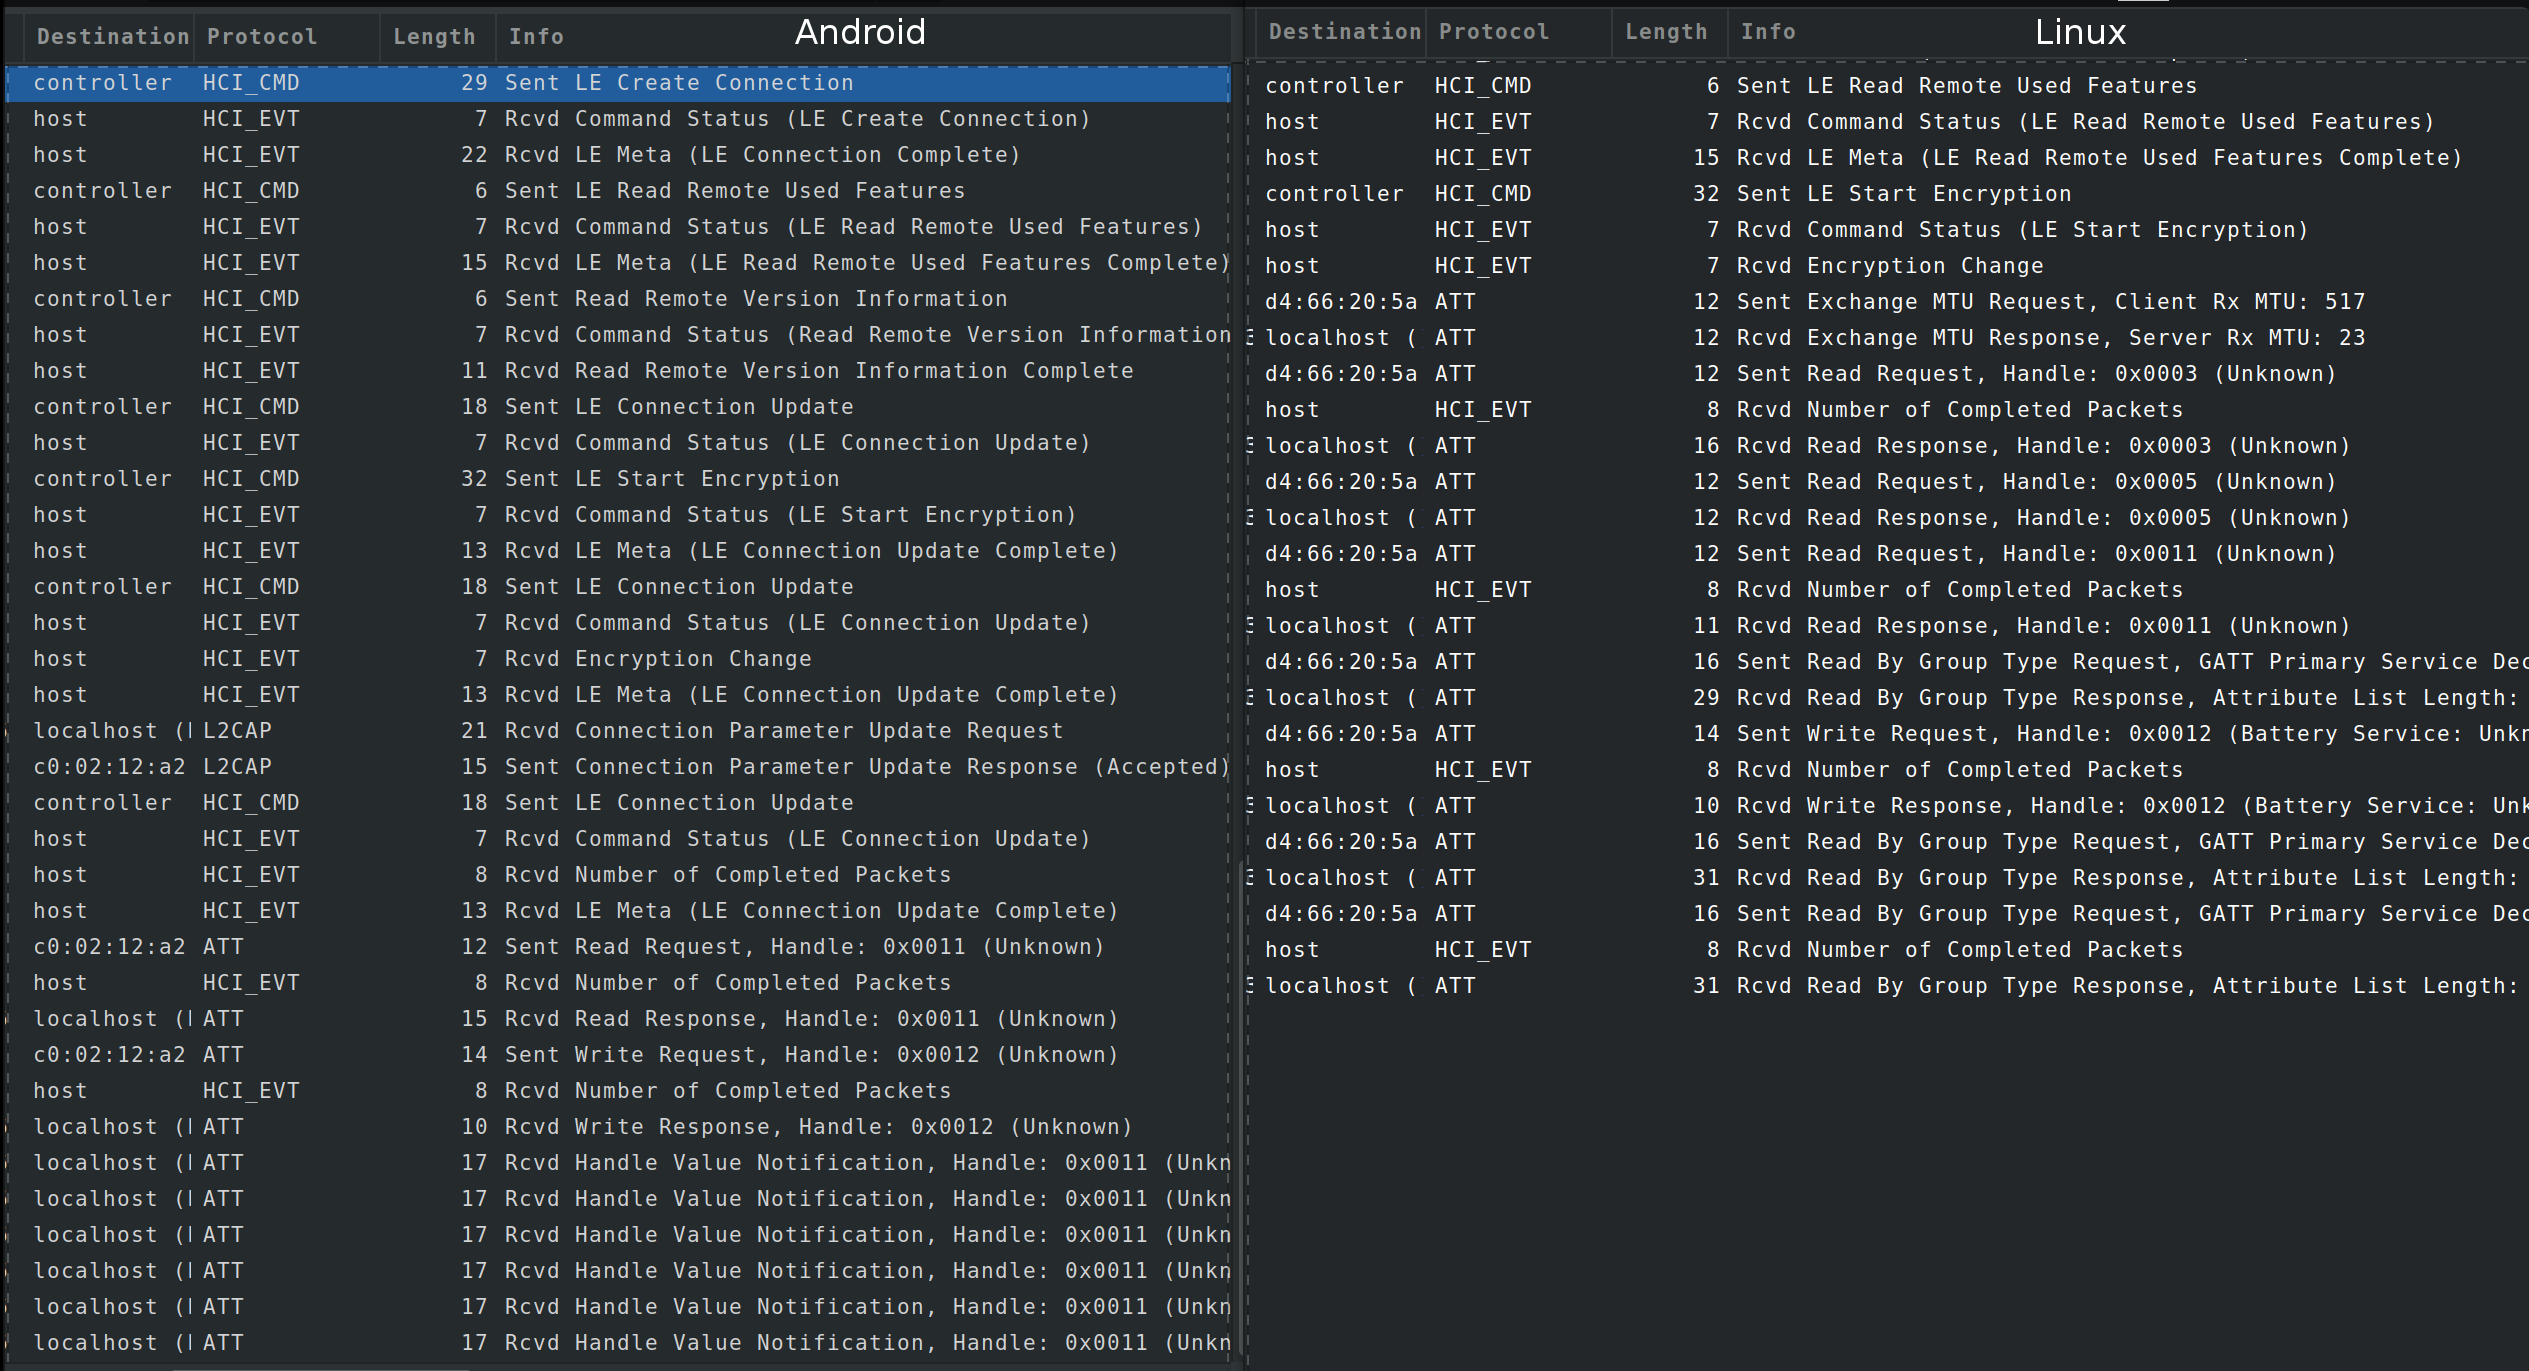 wireshark-freedrum-android-linux-bluetooth-log.png